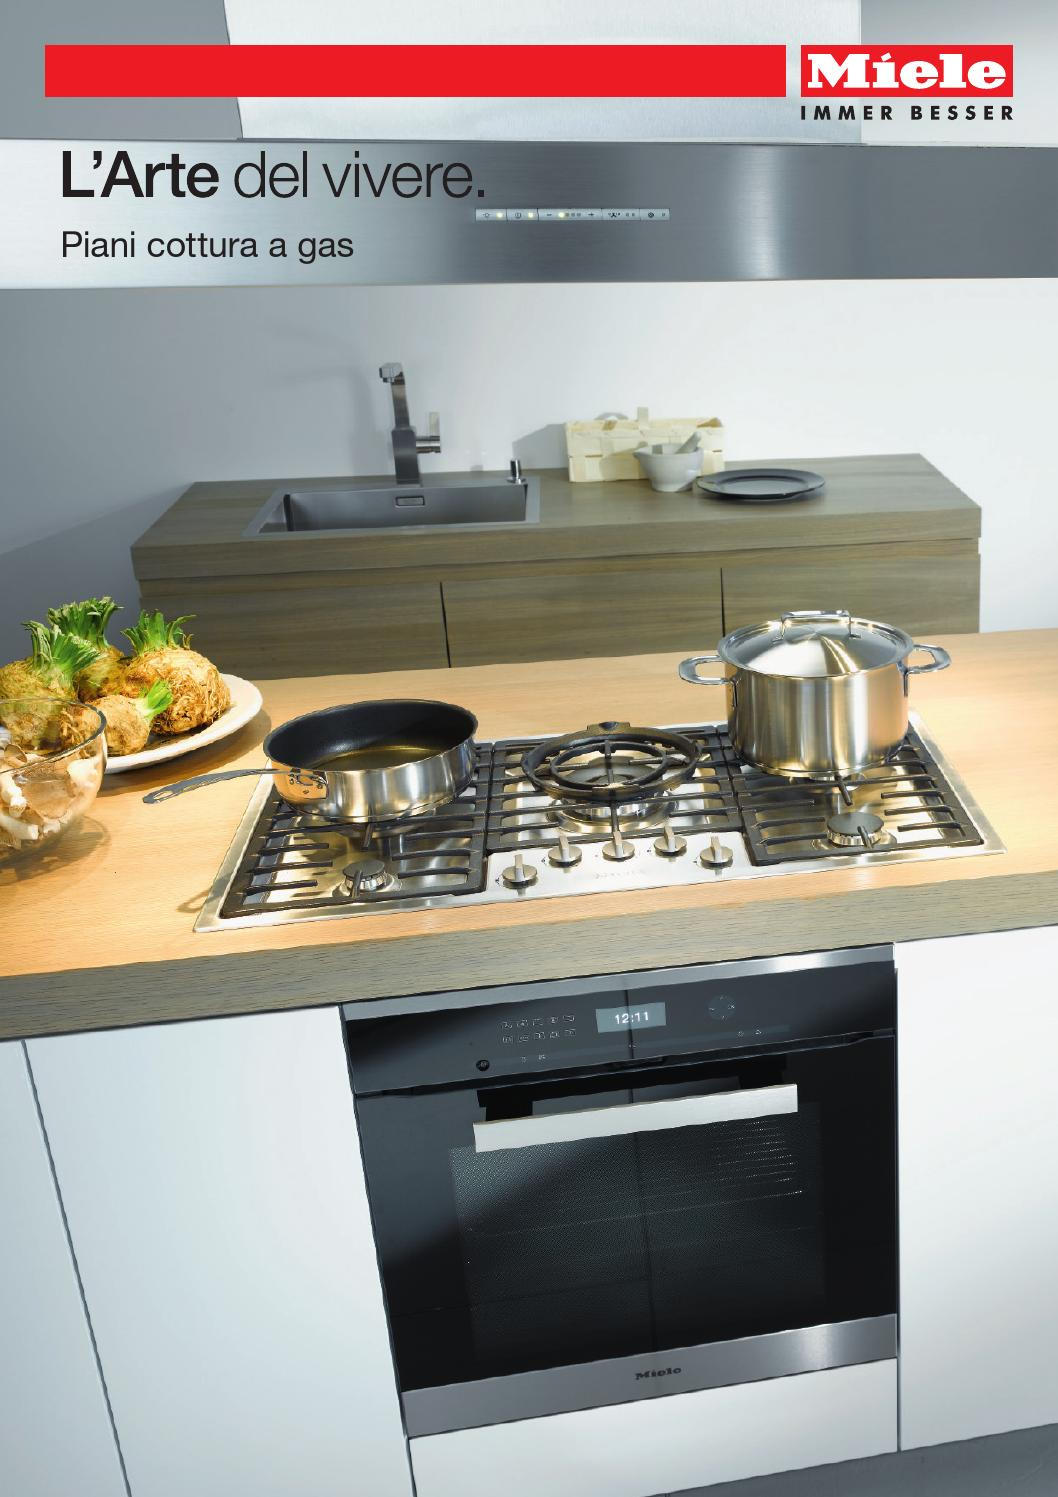 Come Pulire Piano Cottura Vetroceramica miele - catalogo piani cottura a gas - i by miele - issuu